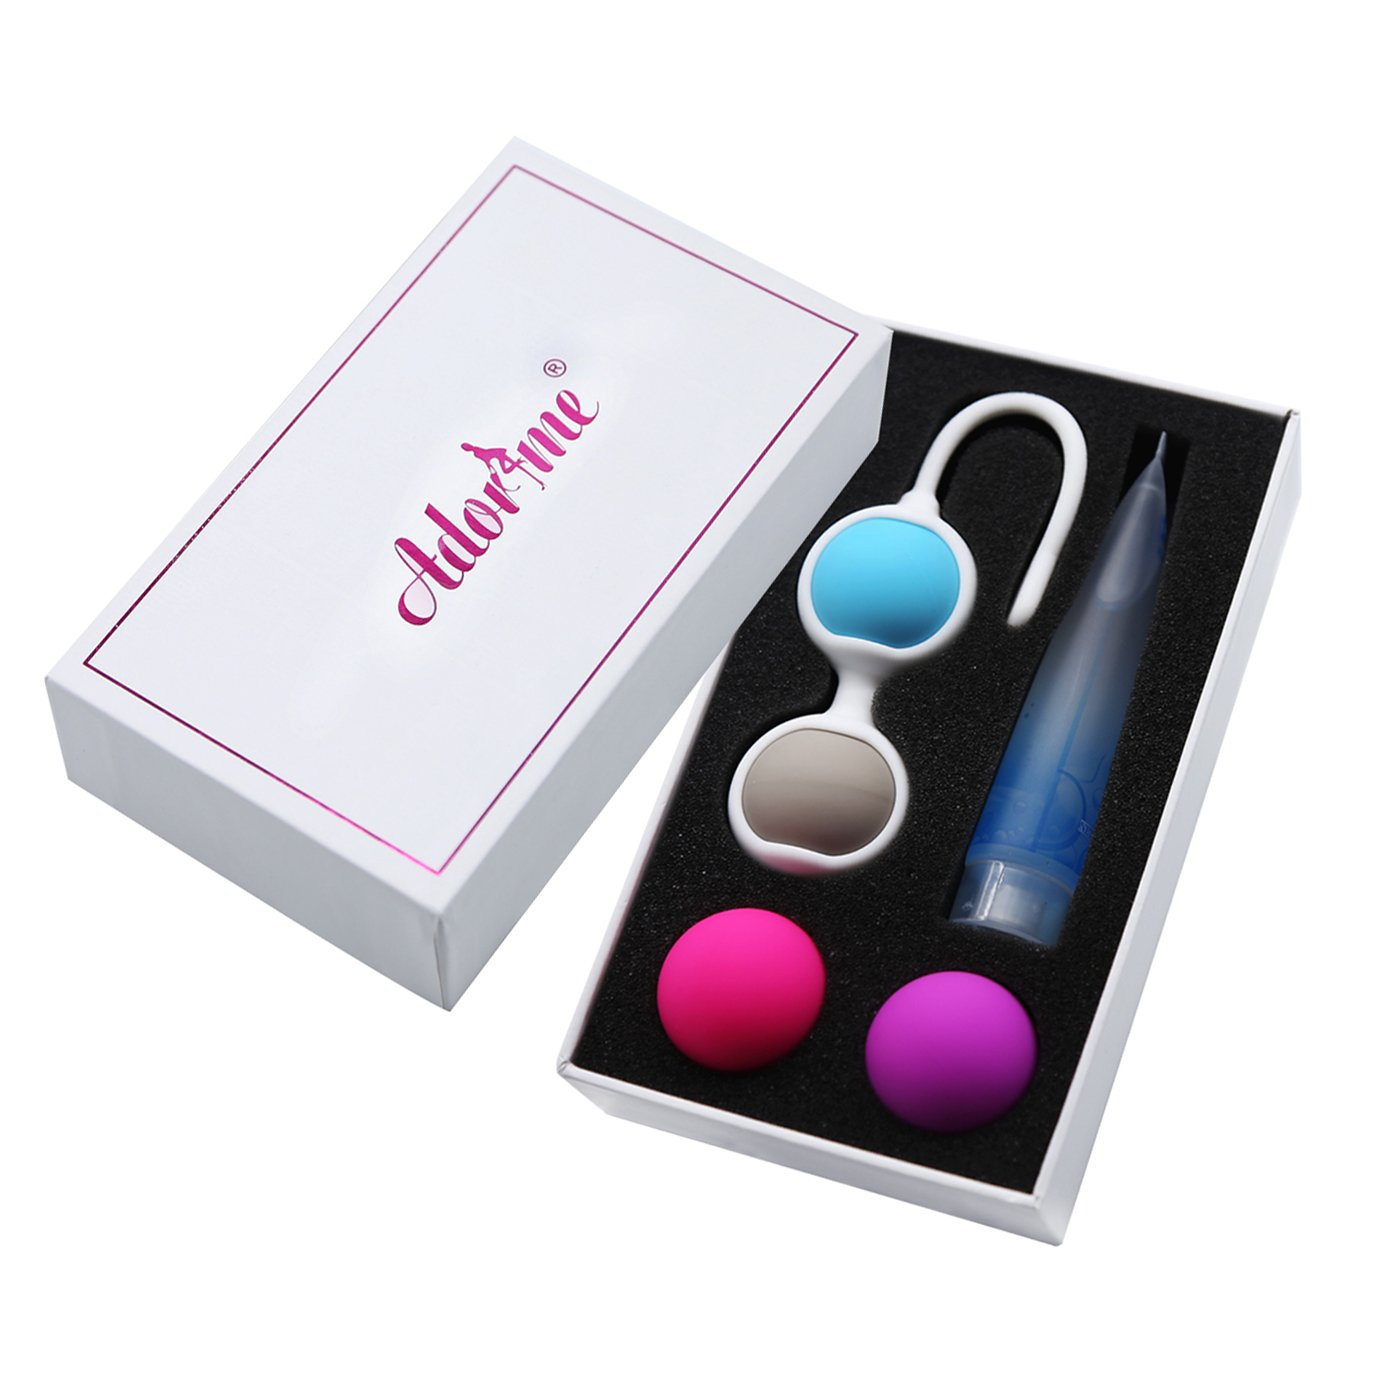 Kegel Exercise Weights - Adorime Ben Wa Kegel Balls Weighted Exercise Kit for Beginner - Doctor Recommended for Women & Girls Bladder Control & Pelvic Floor Exercises